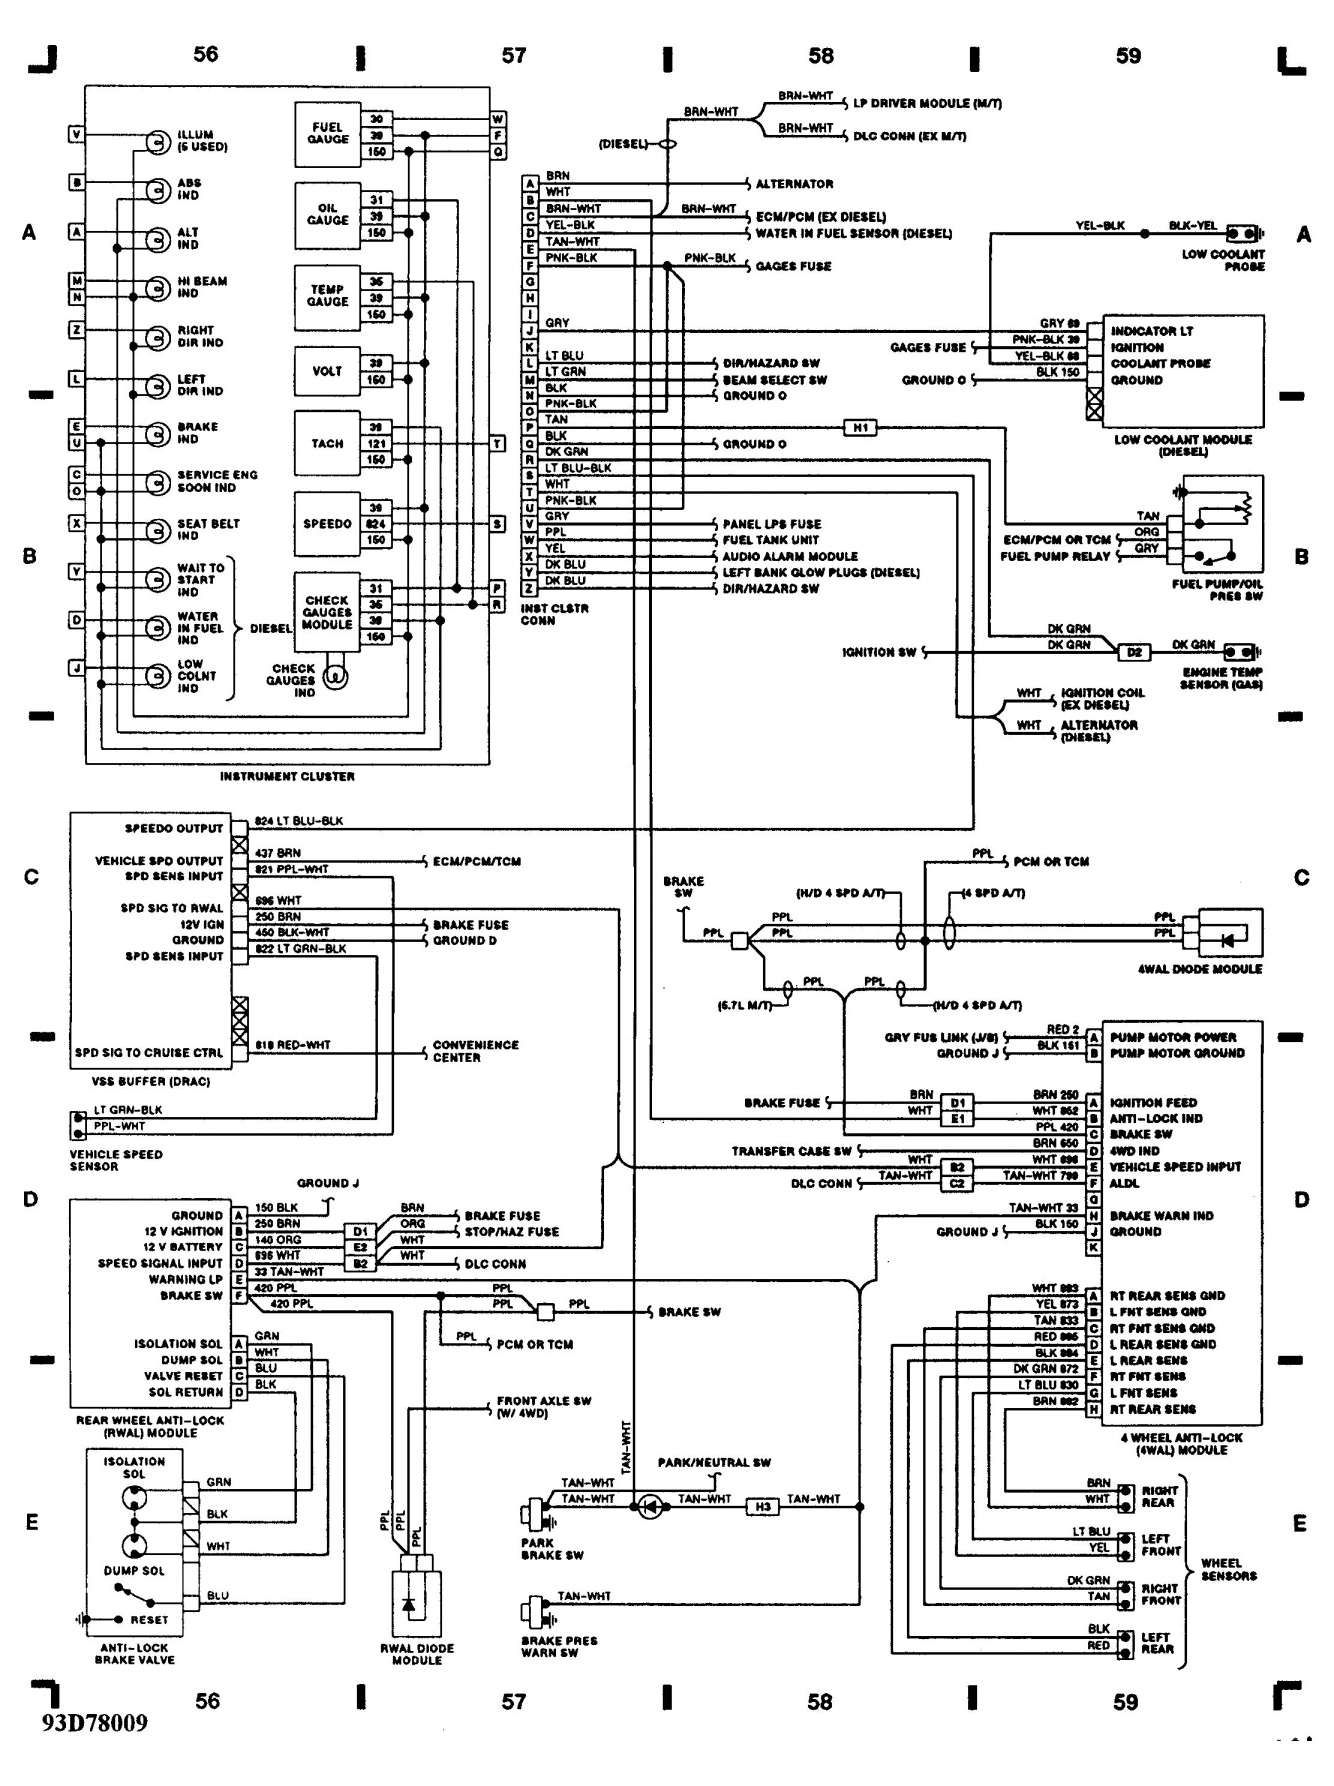 [ZTBE_9966]  Chevy 305 Engine Wiring Diagram and Engine Wiring Harness Diagram - Getting  Started Of in 2020 | Toyota corolla, Chevy trucks, Chevy | Chevy S10 Wiring Harness |  | Pinterest